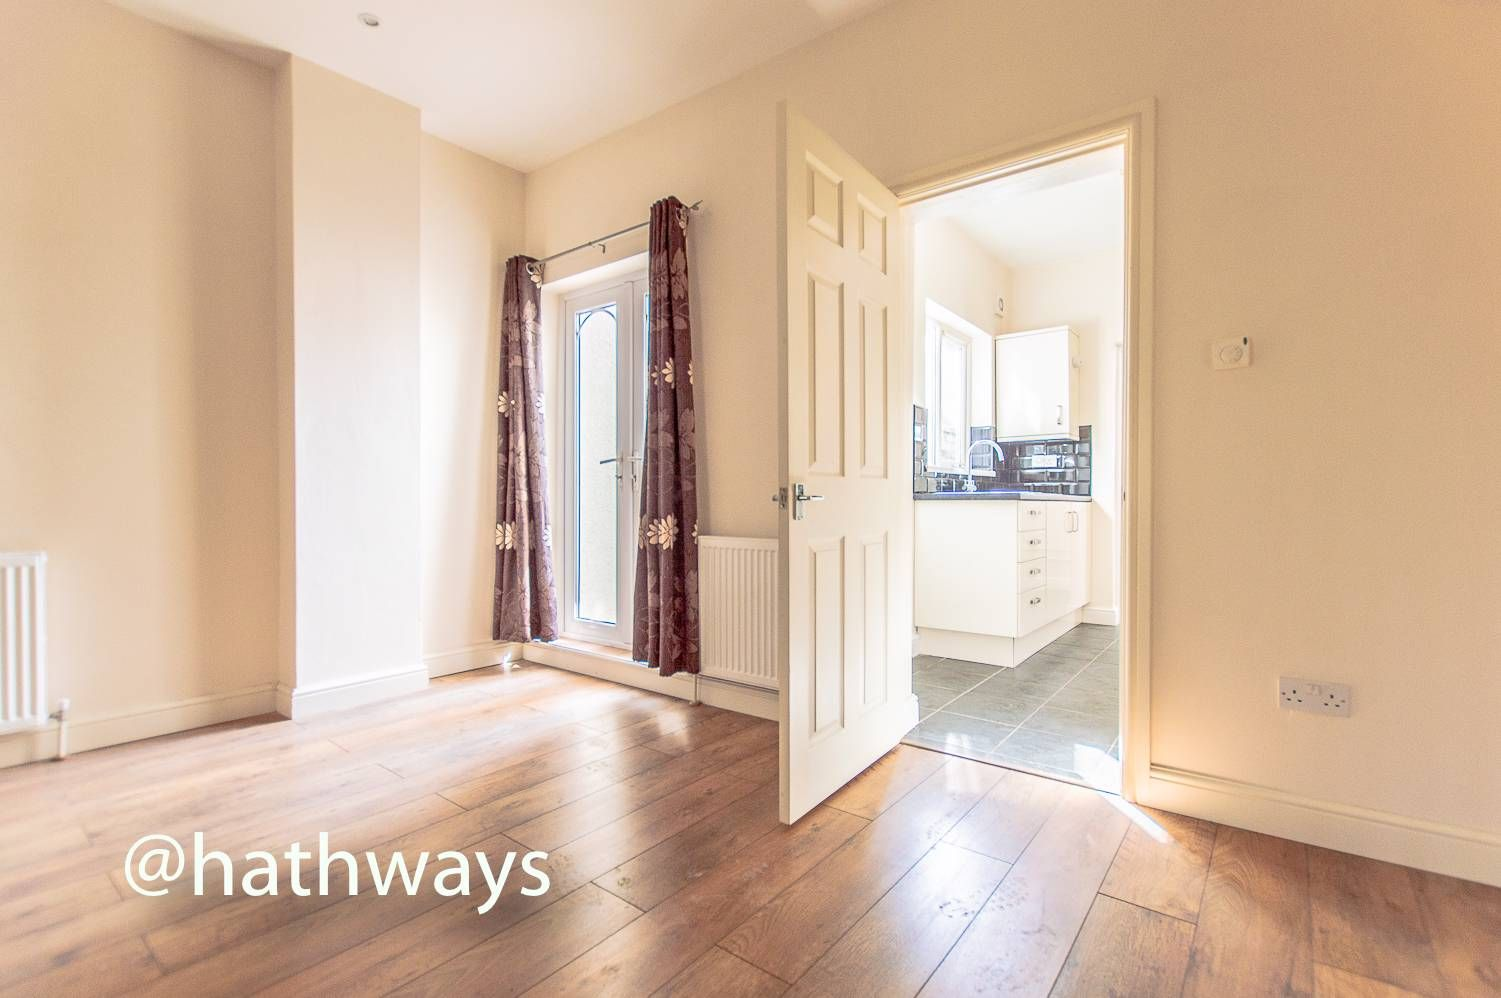 3 bed house for sale in Glenview  - Property Image 8